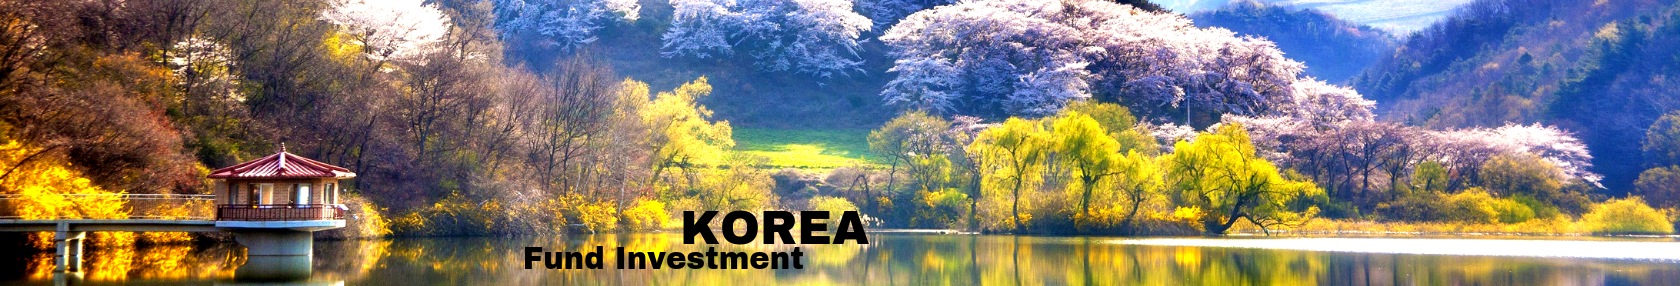 Korea, Fund Investment